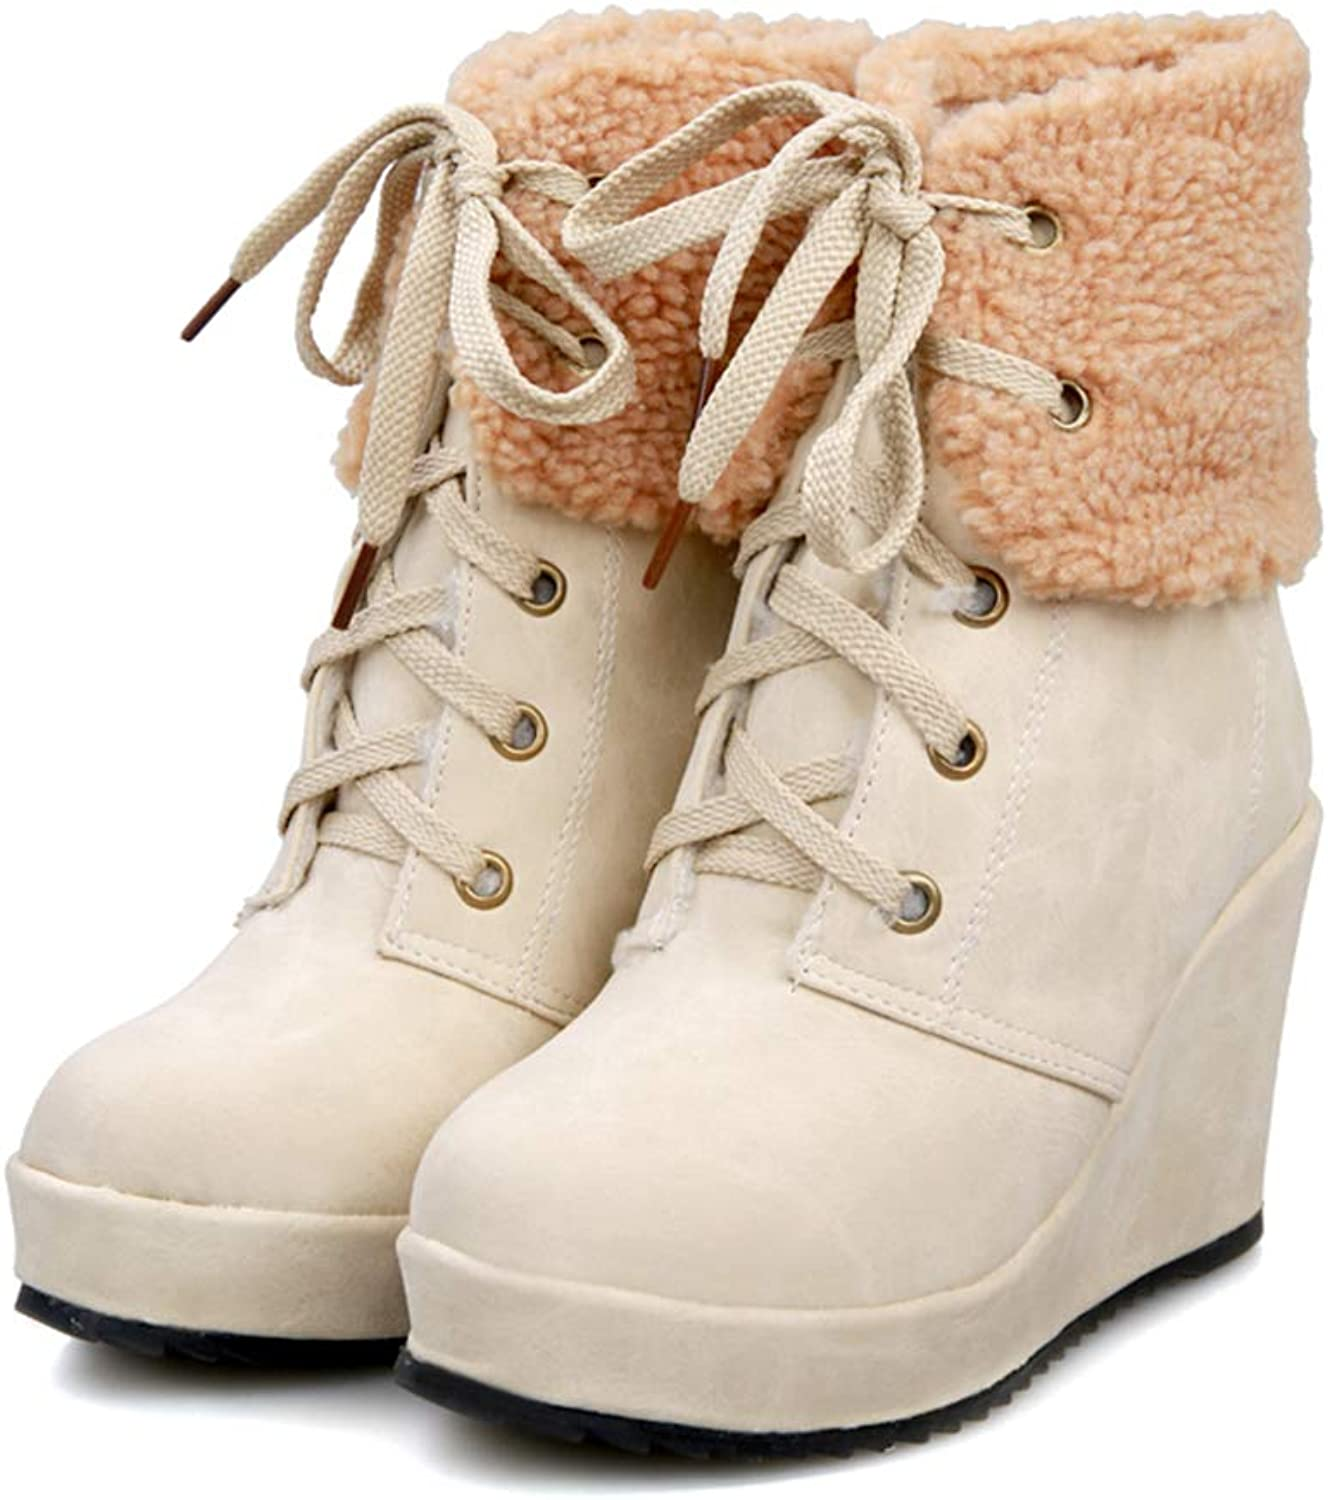 Zarbrina Womens Wedge Platform Fur Lined Ankle Boots Fashion Rubber Sole Lace Up Short Plush High Heel Winter Warm shoes